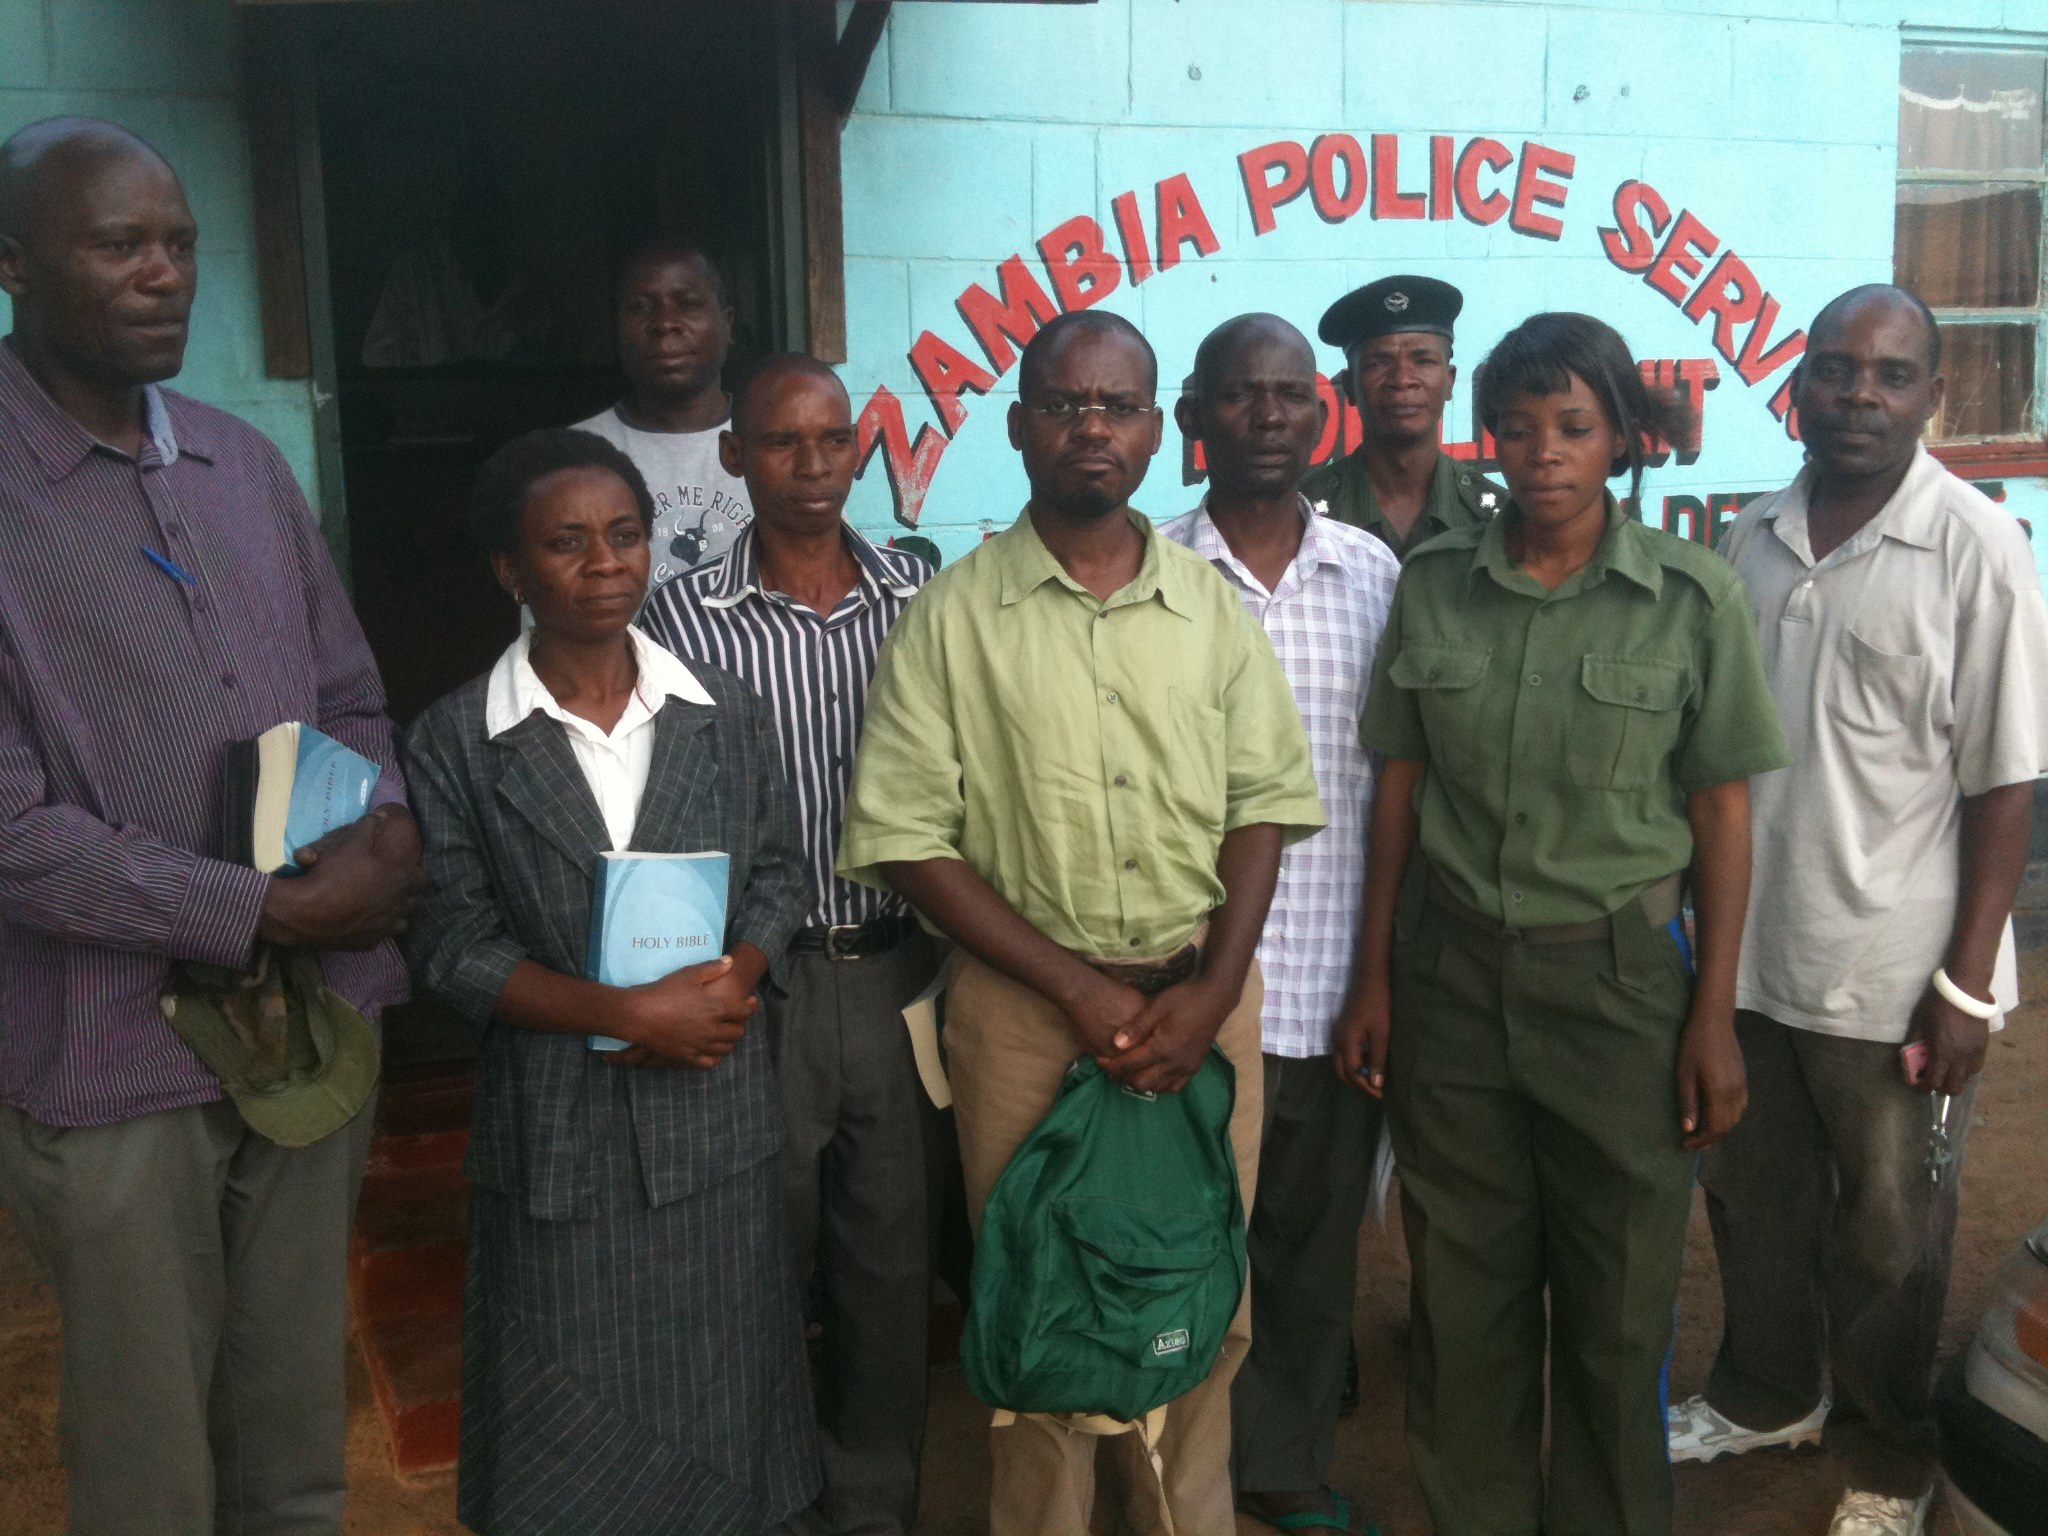 Zambia Police Outreach